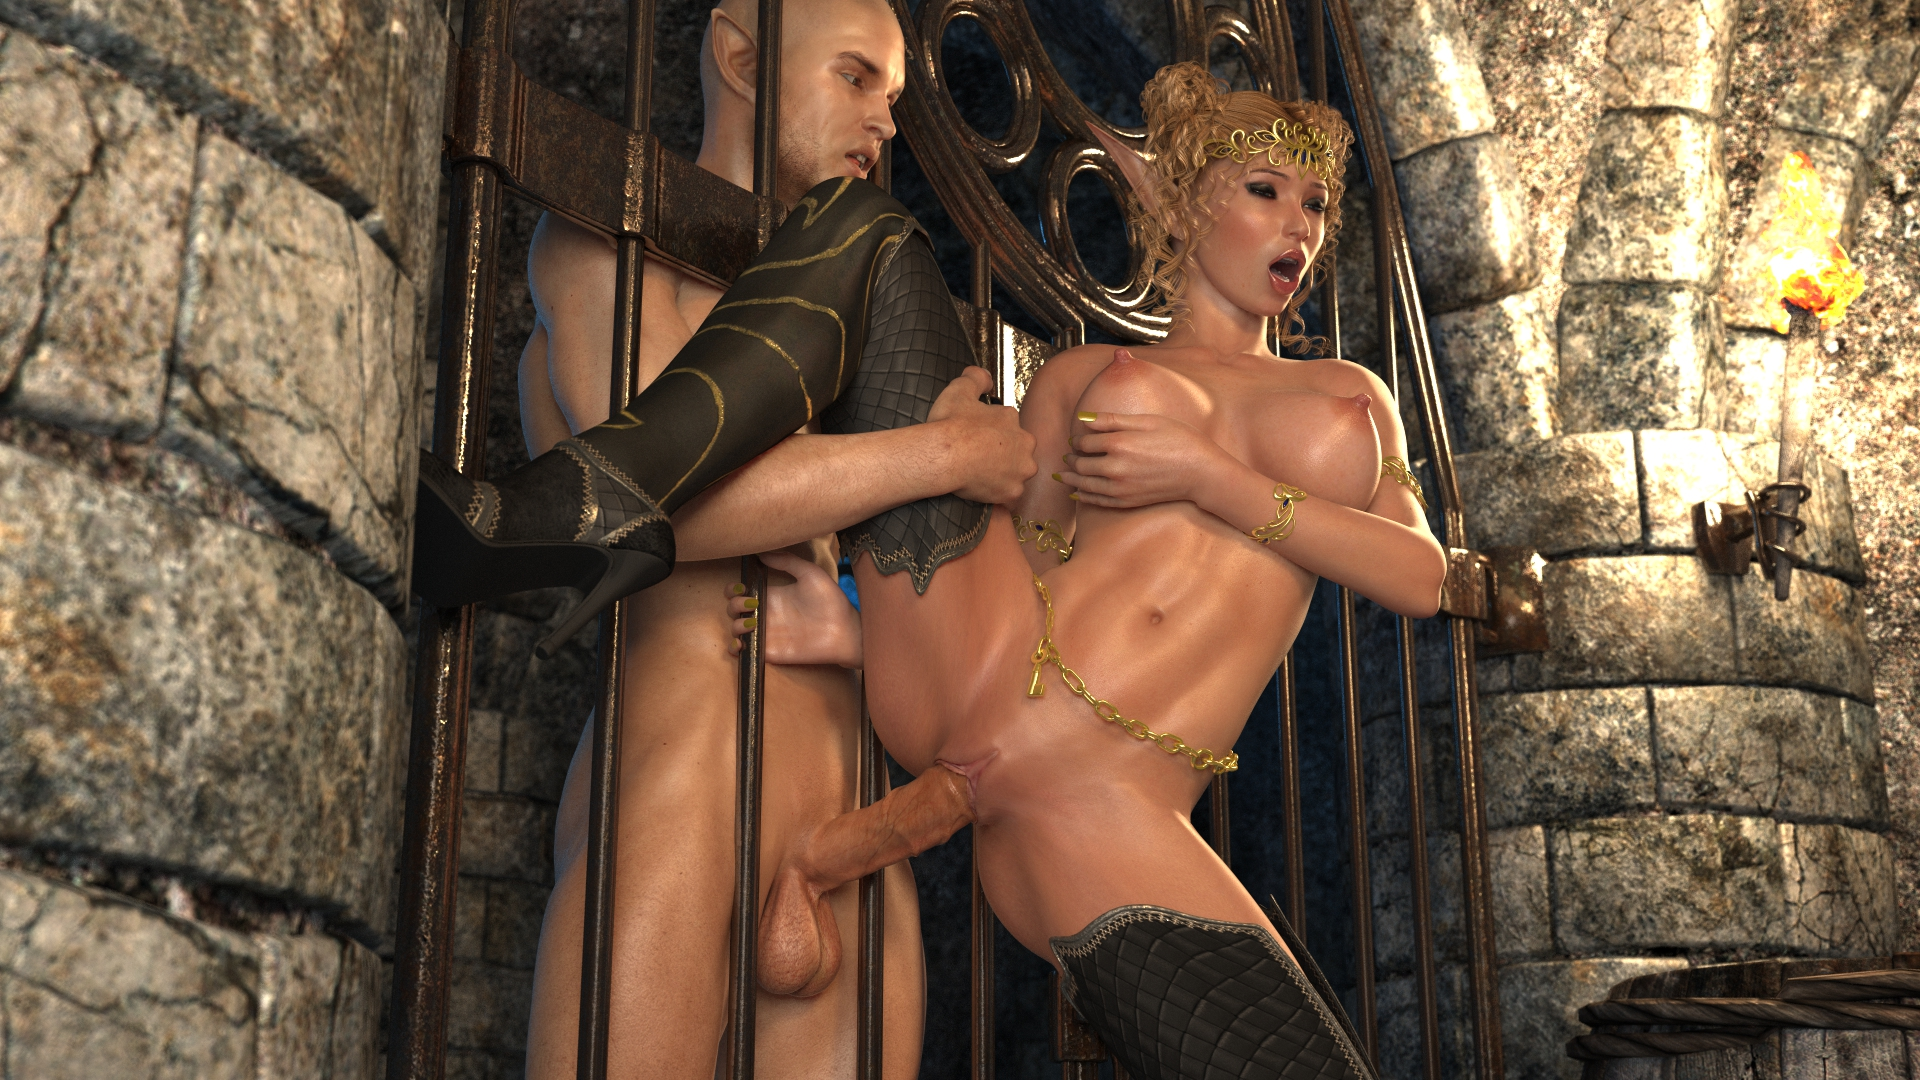 Elf sex hd pics fucked photo